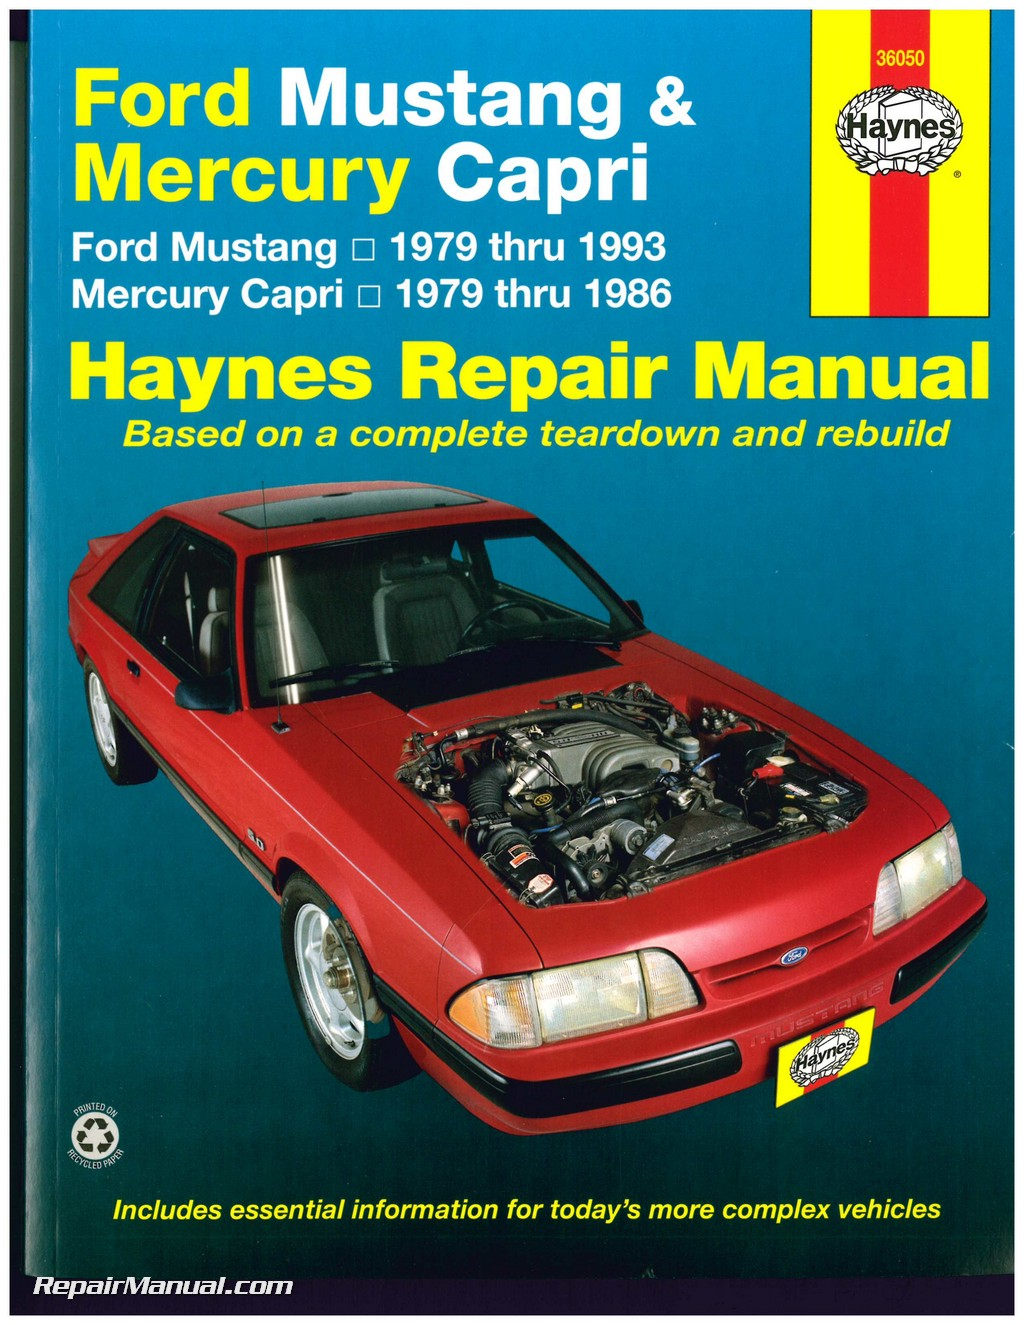 haynes ford mustang 1979 1993 mercury capri 1979 1986 auto repair manual rh repairmanual com ford capri workshop manual pdf ford capri workshop manual pdf free download